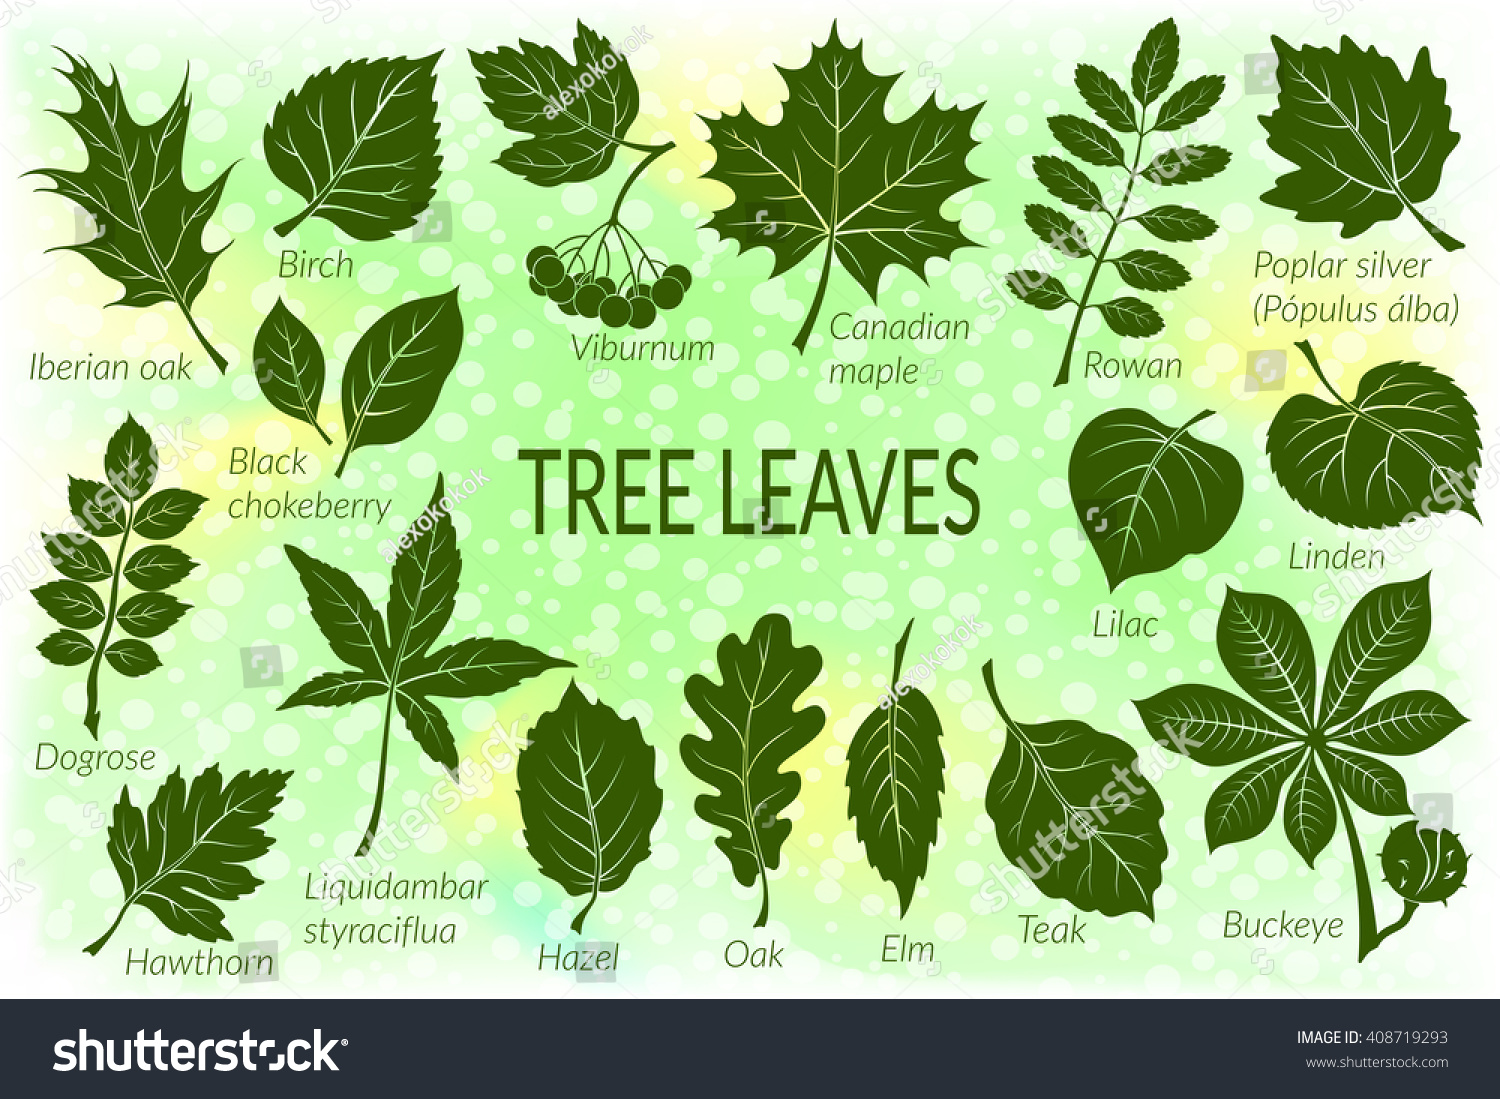 Lilac Tree Information The Gallery For Gt Fruit Tree Leaves Identification